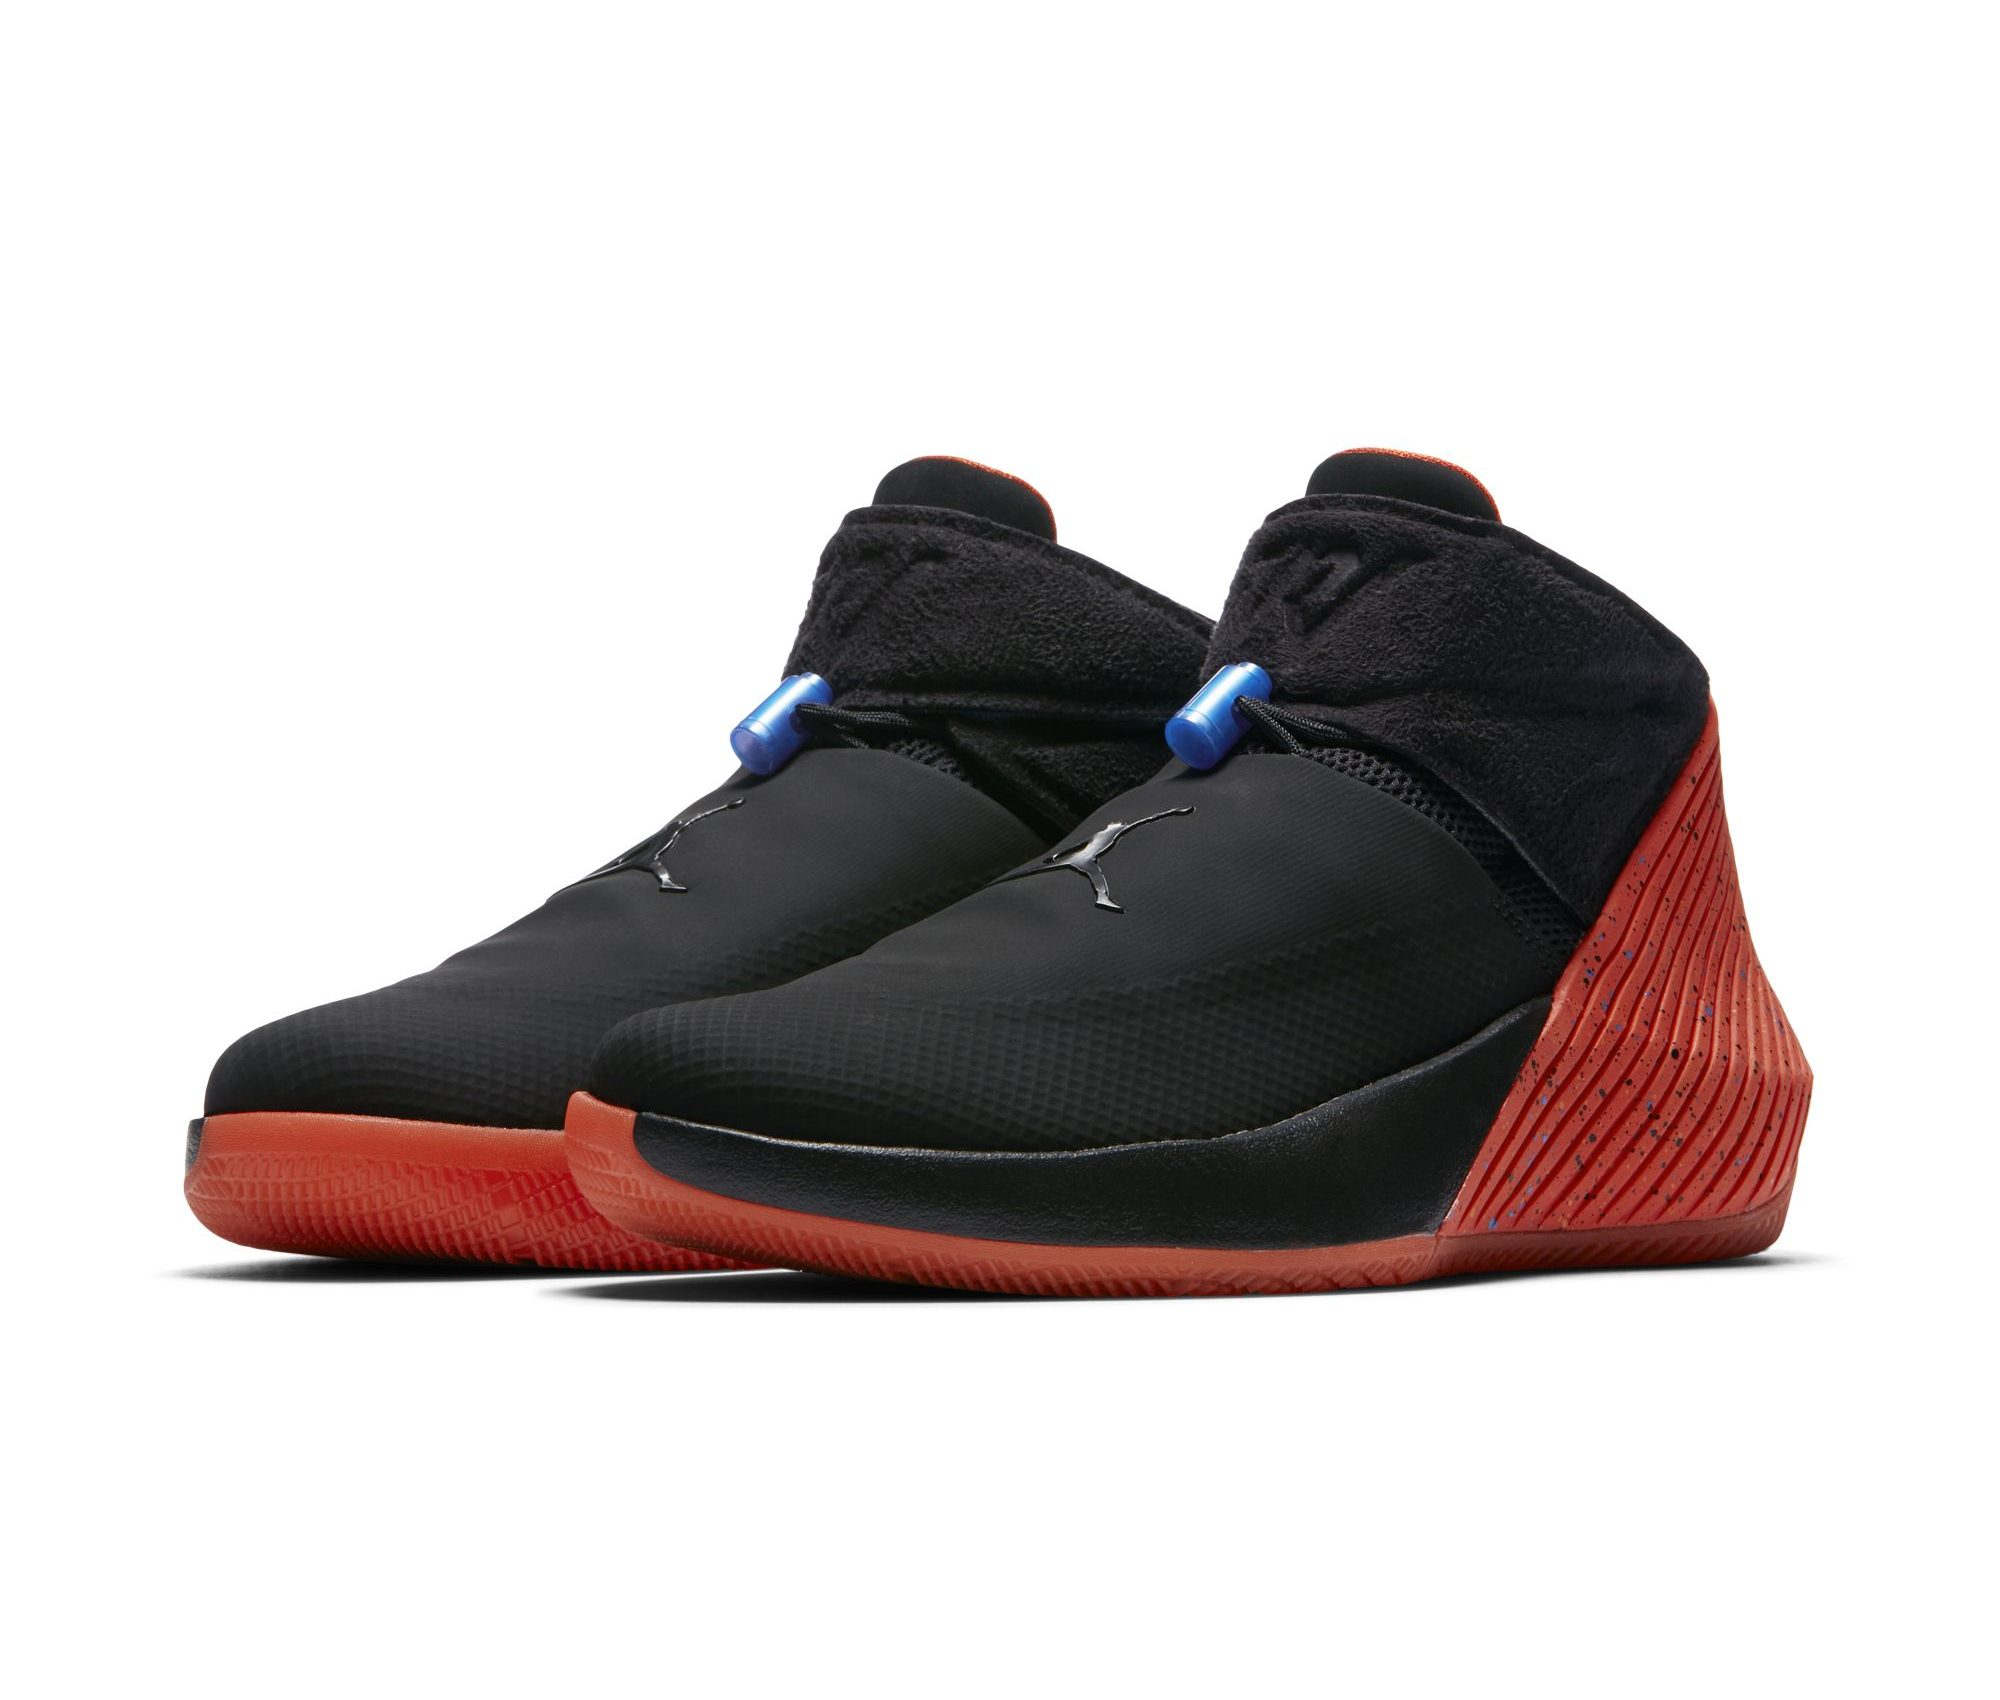 sports shoes e75ef 69b1f Jordan Why Not Zero.1 in Thunder s Away Colorway Dropping Soon1. Apr3